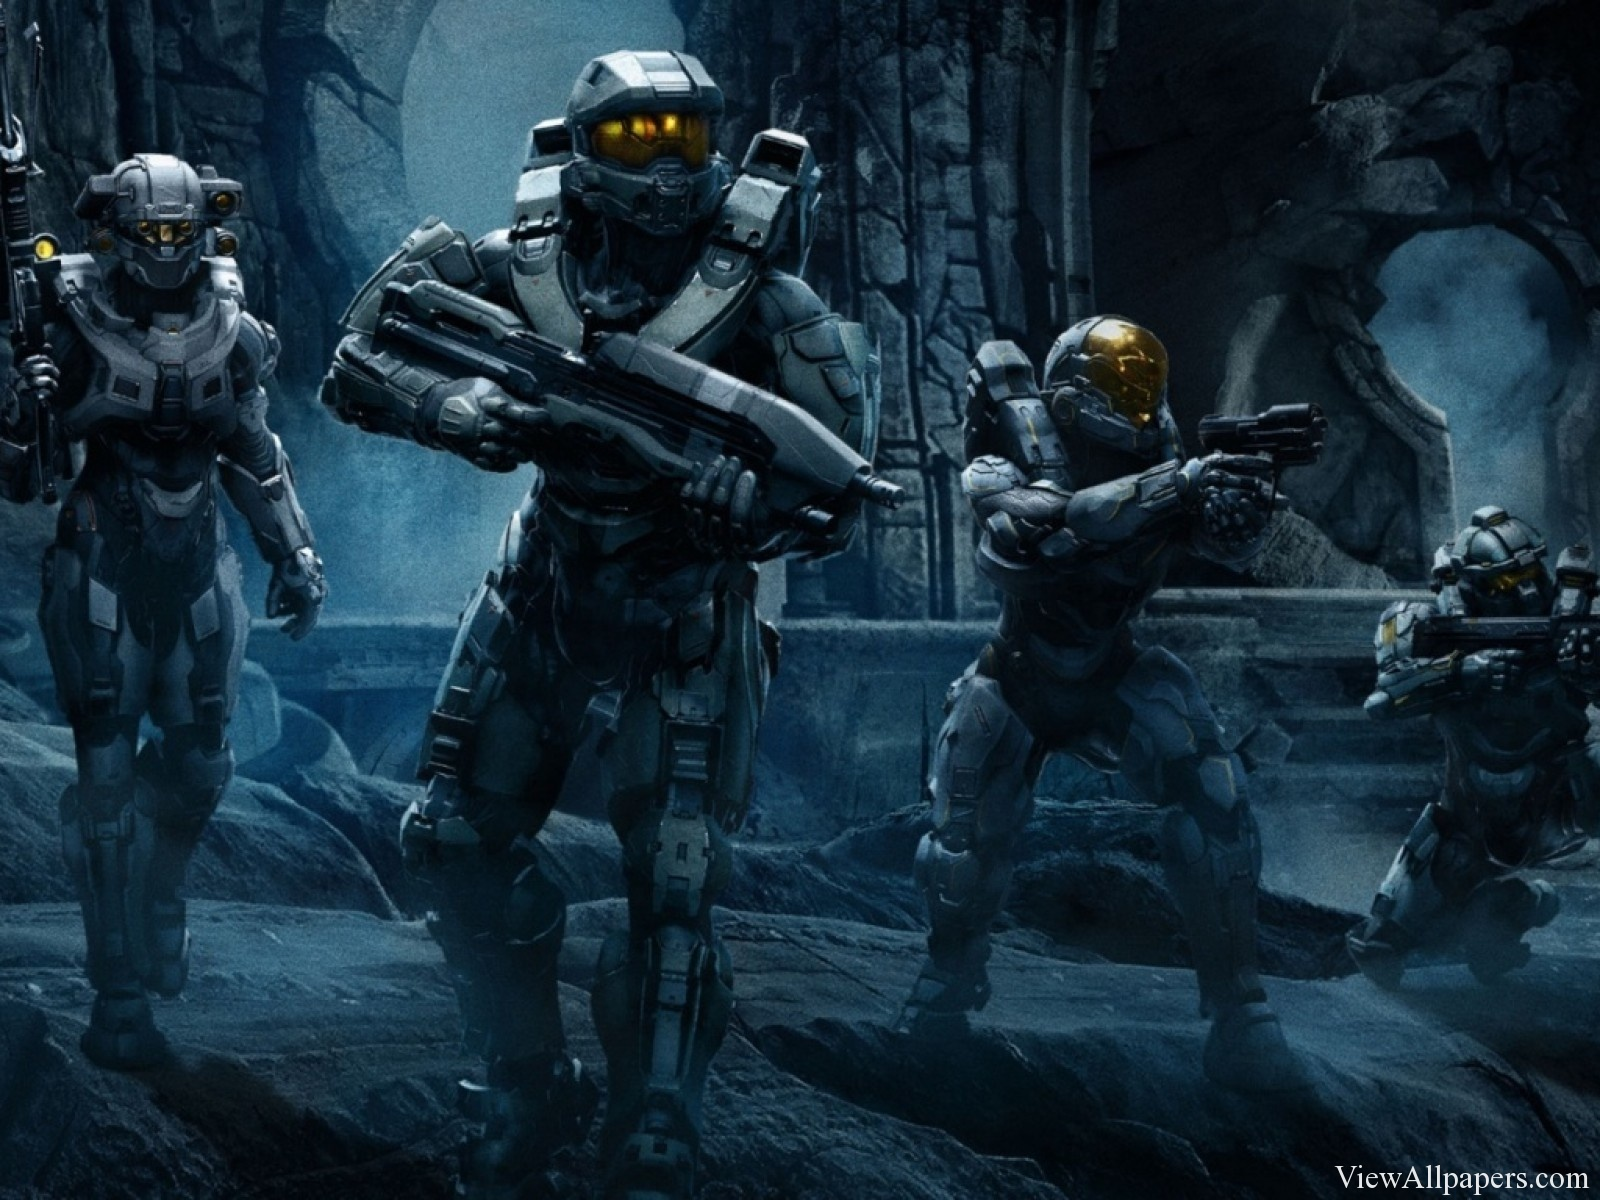 2015 Halo 5 Guardians Images High Resolution Wallpaper 2015 Halo 5 1600x1200